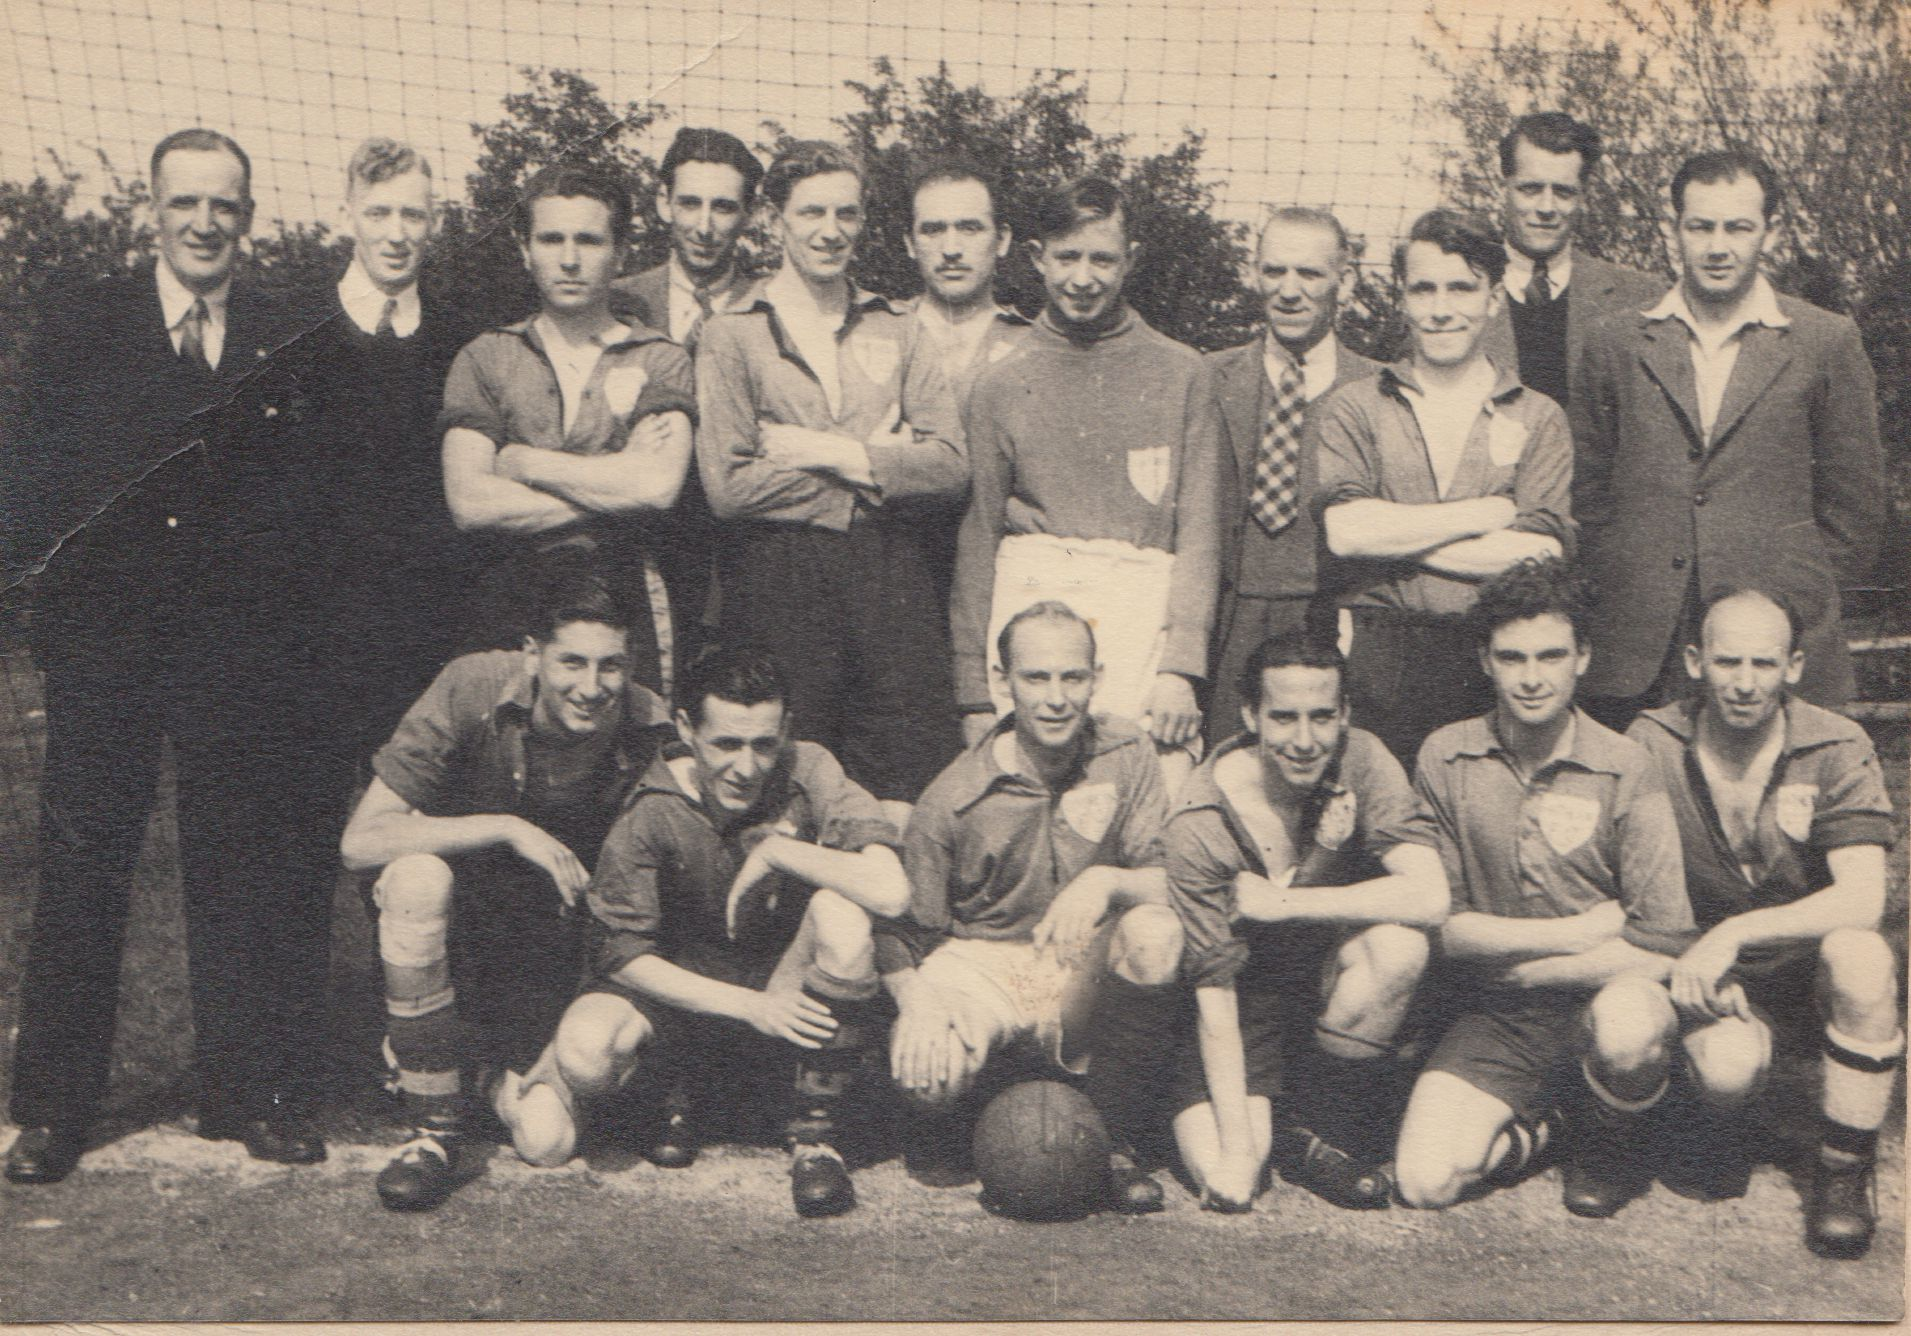 football_club_unknown_0001.jpg